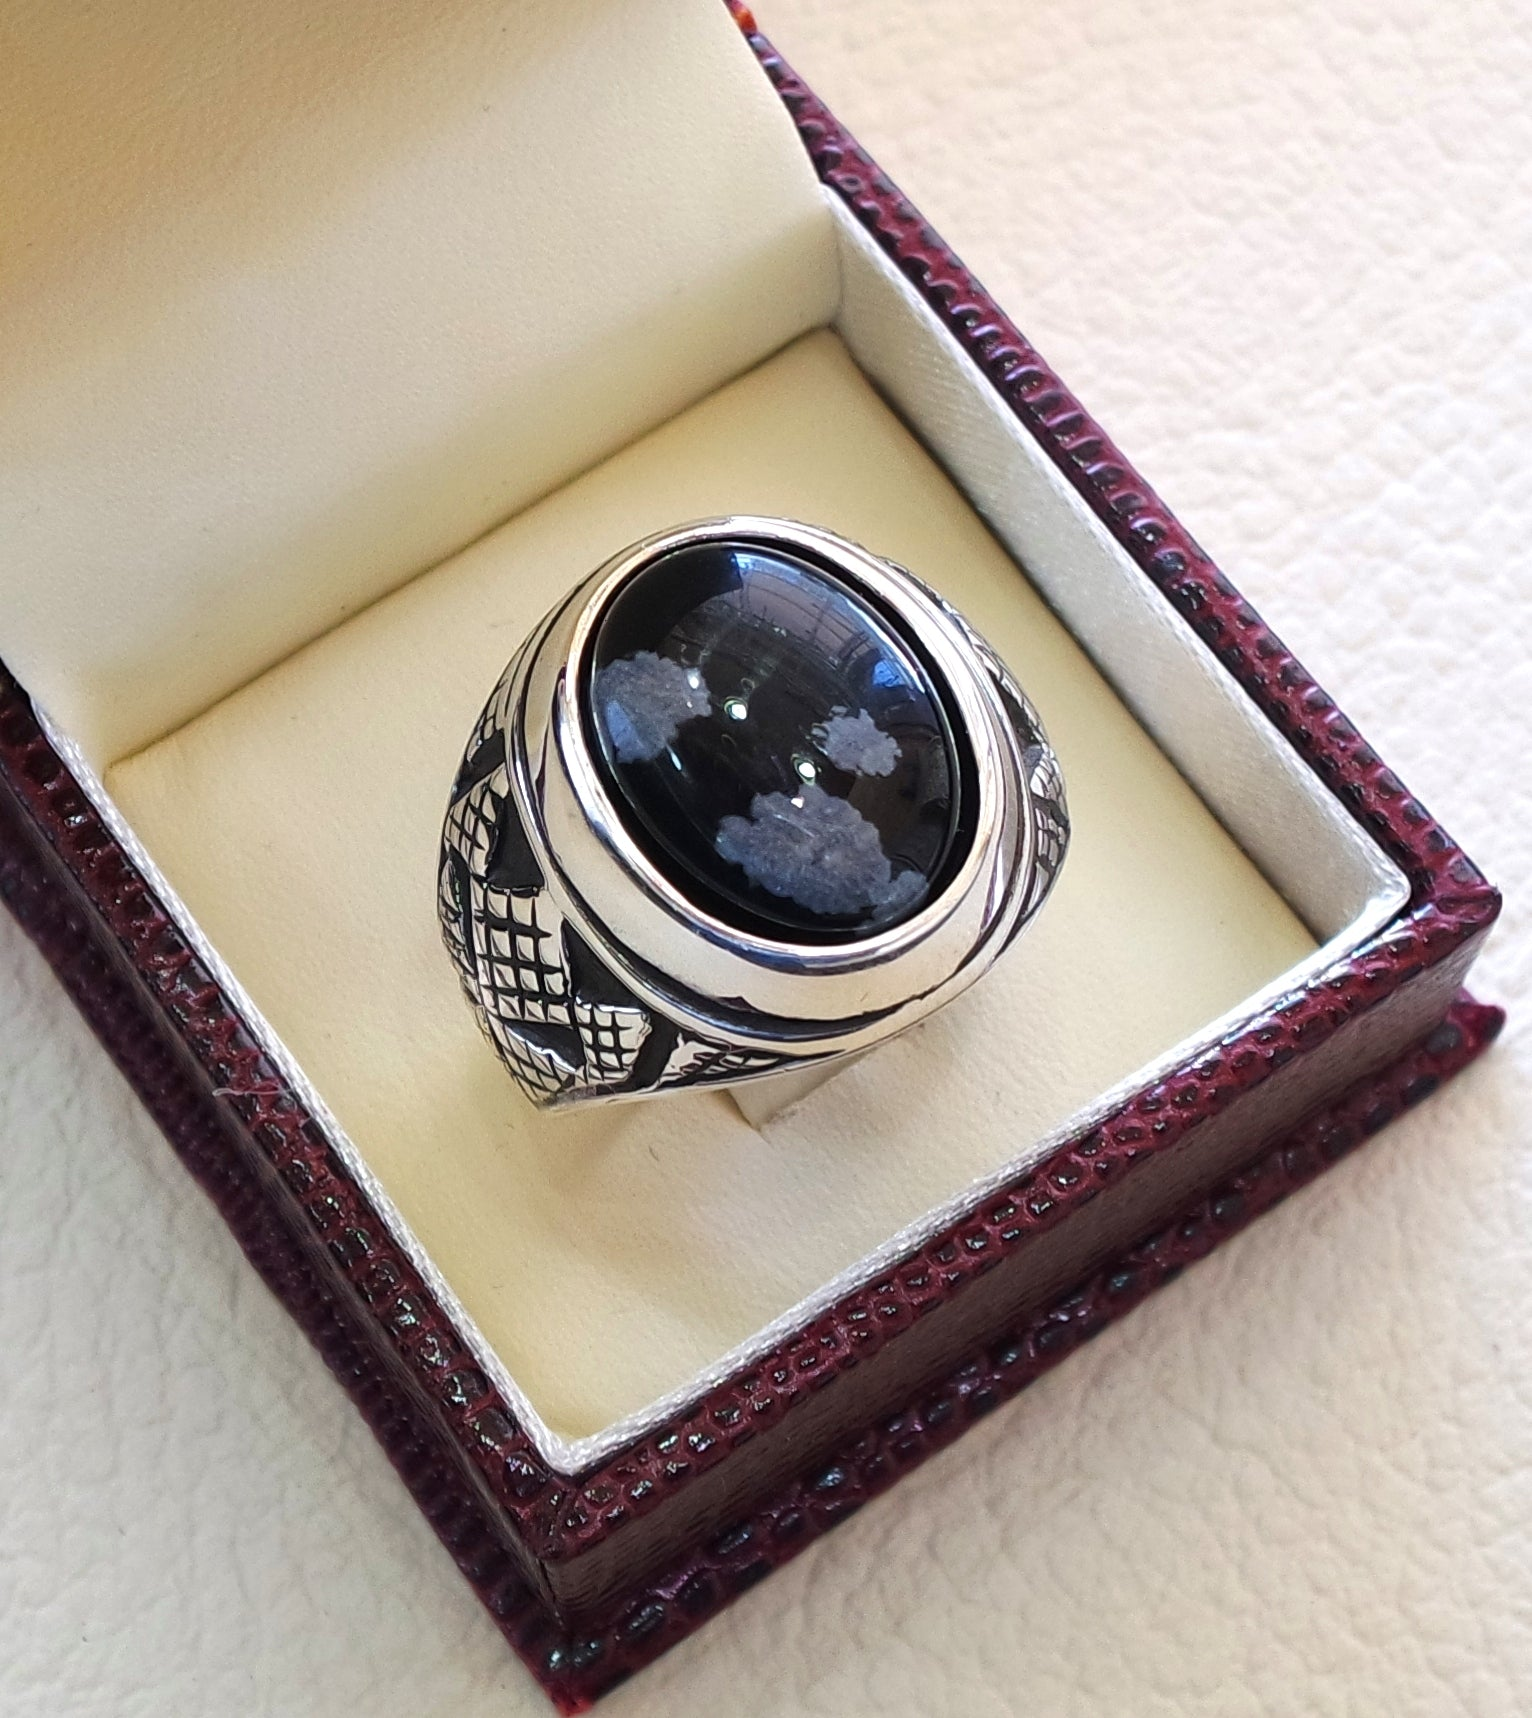 Snowflake obsidian black aqeeq heavy man ring natural stone sterling silver 925 vintage turkish style all sizes fast shipping